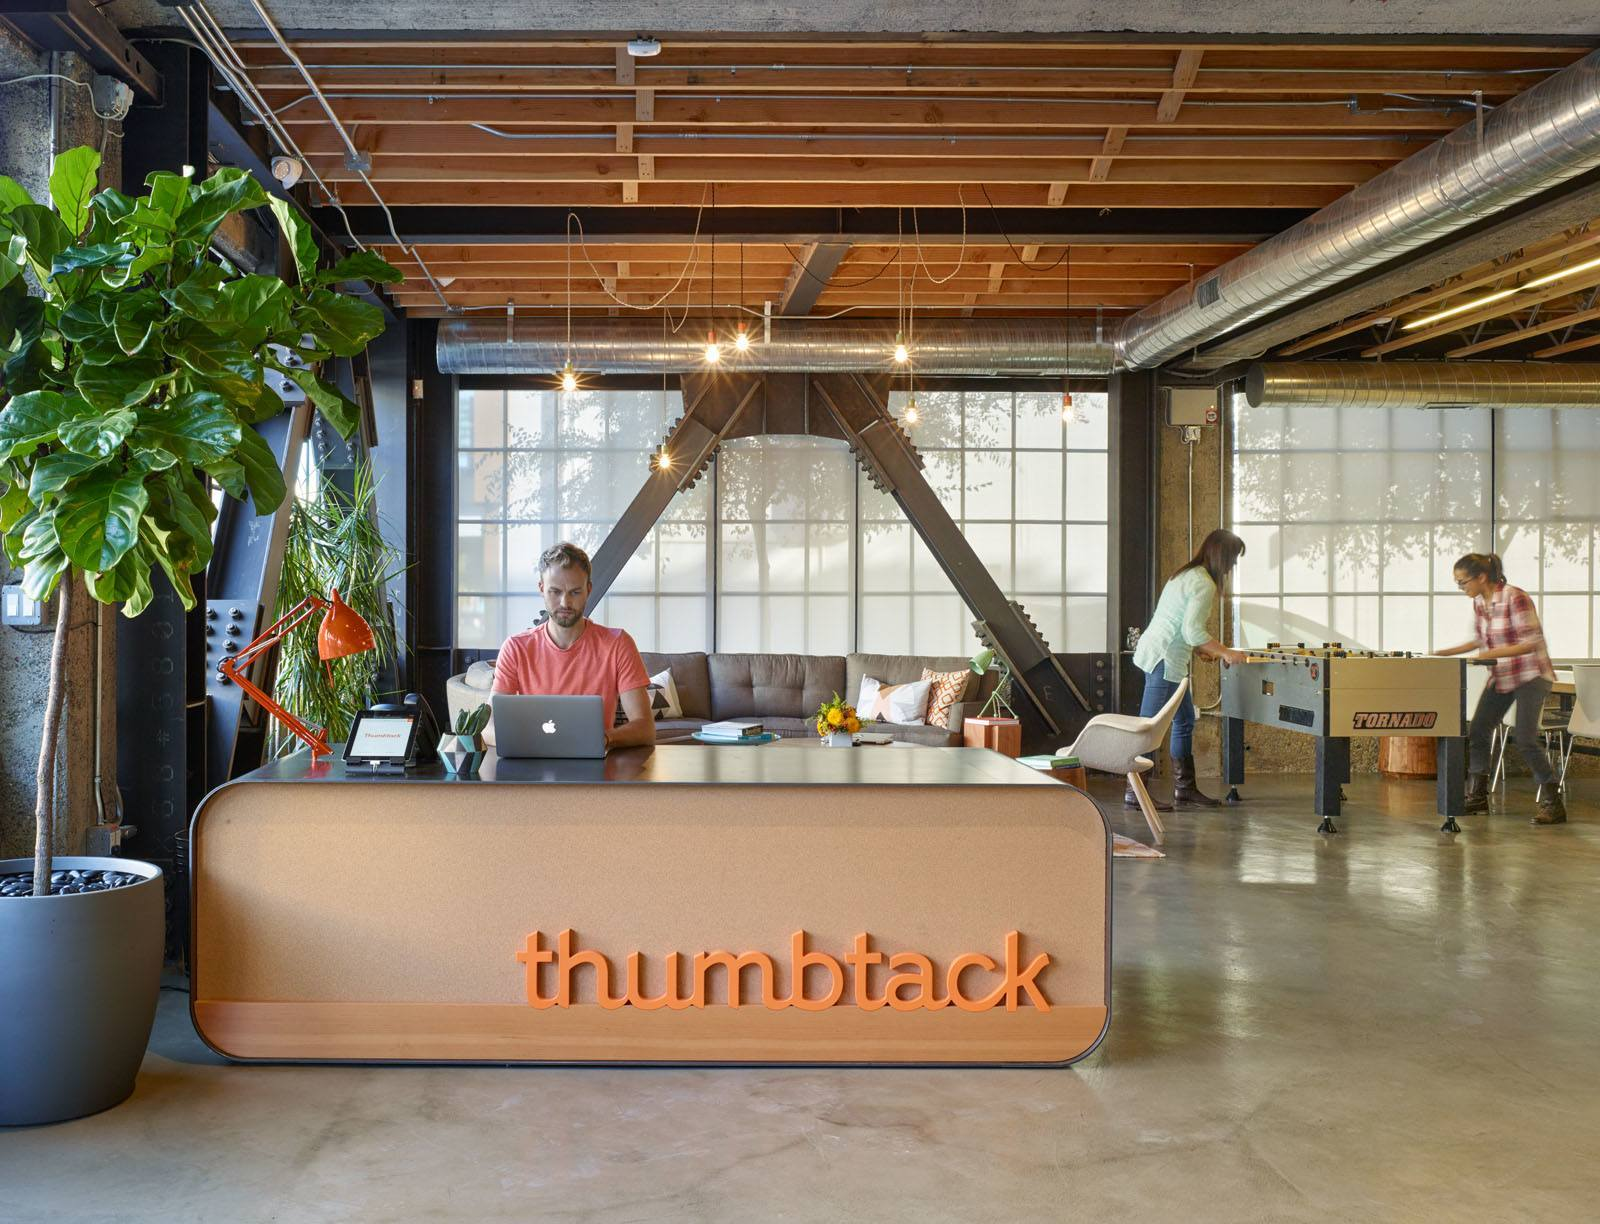 hulu corporate office share. Thumbtack Headquarters Reception\u2026 Hulu Corporate Office Share